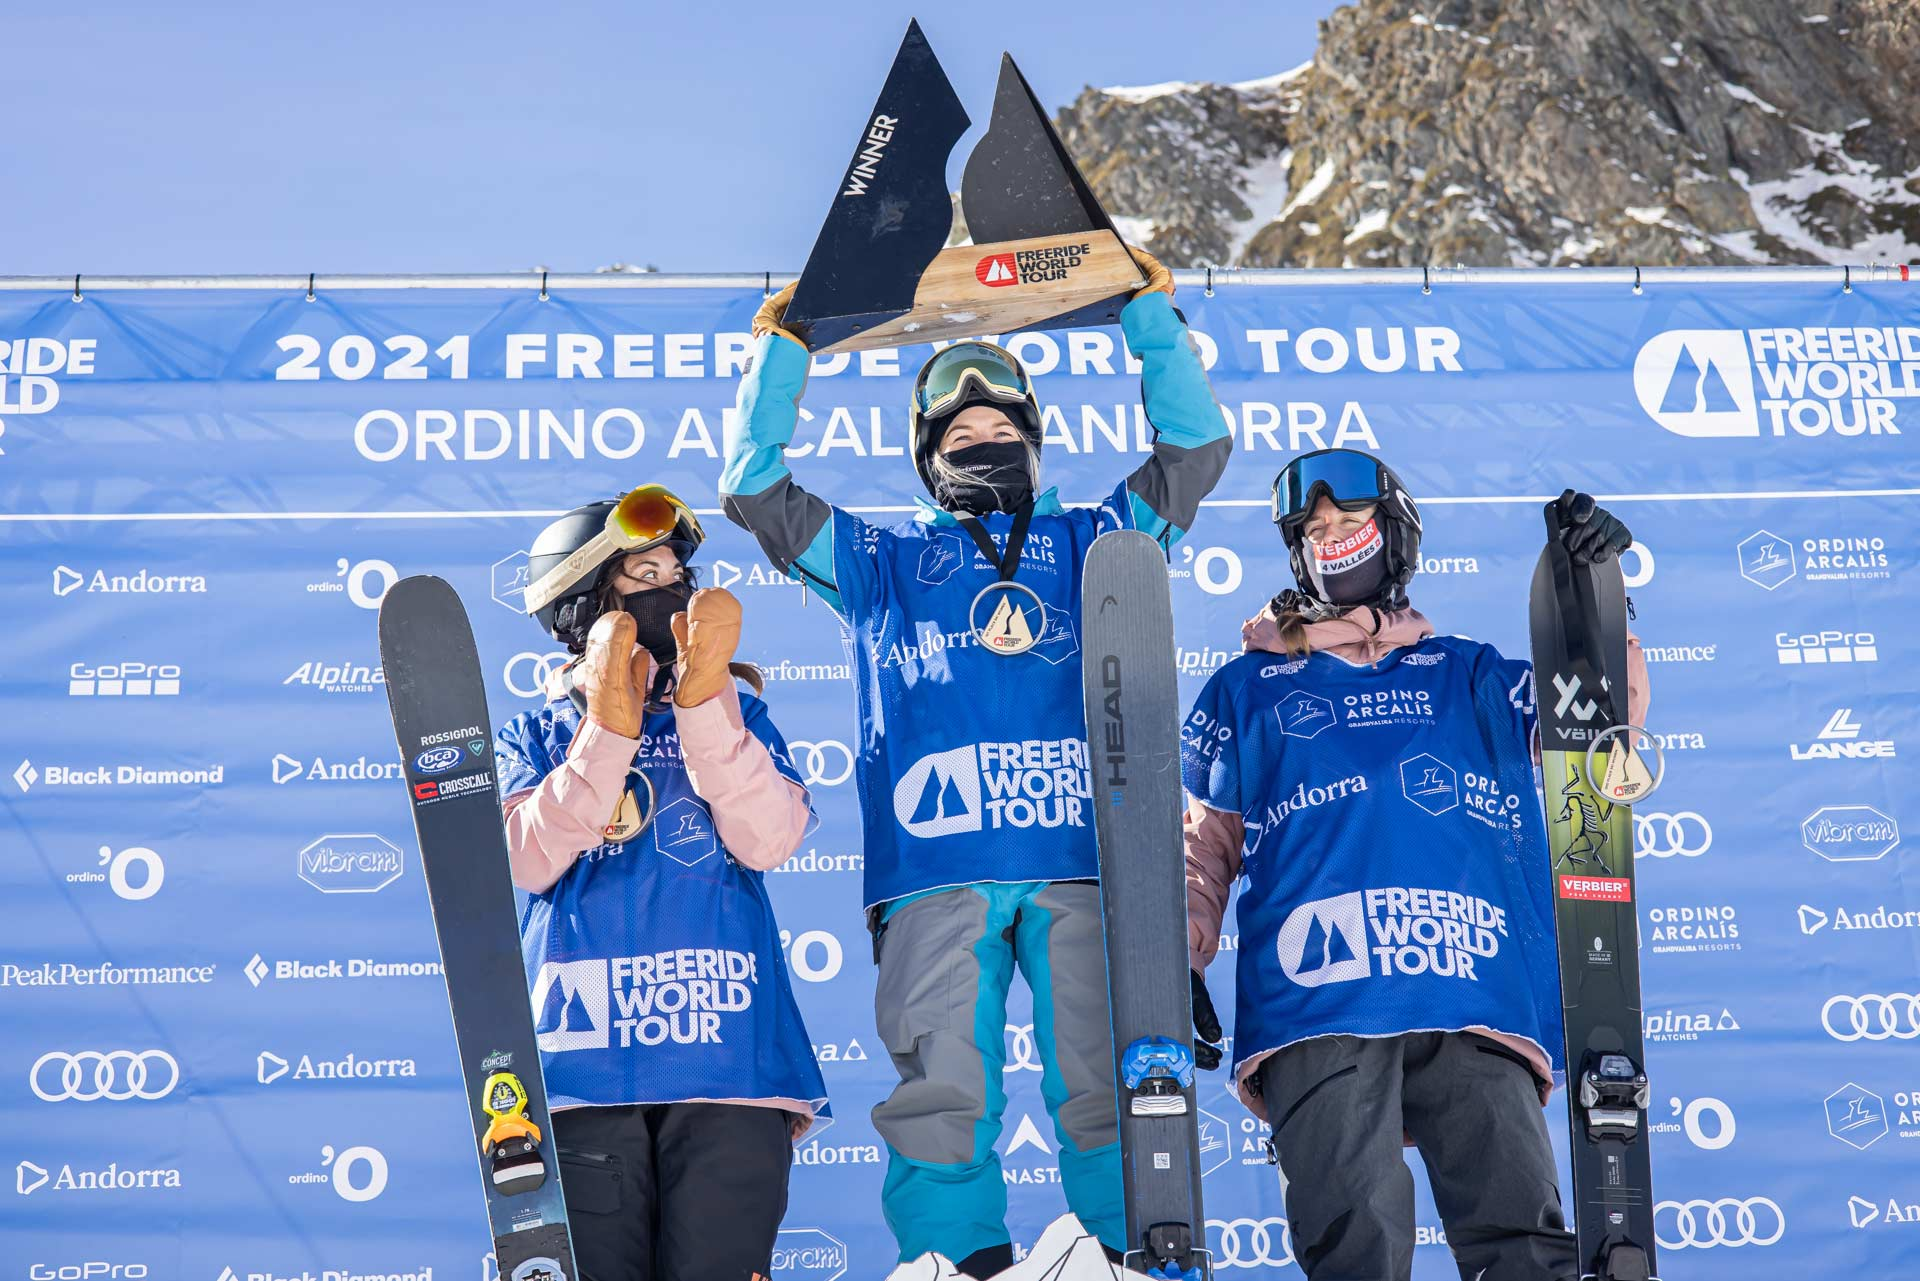 Freeride World Tour 2021 #1 in Andorra: Die Ergebnisse & Winning Runs